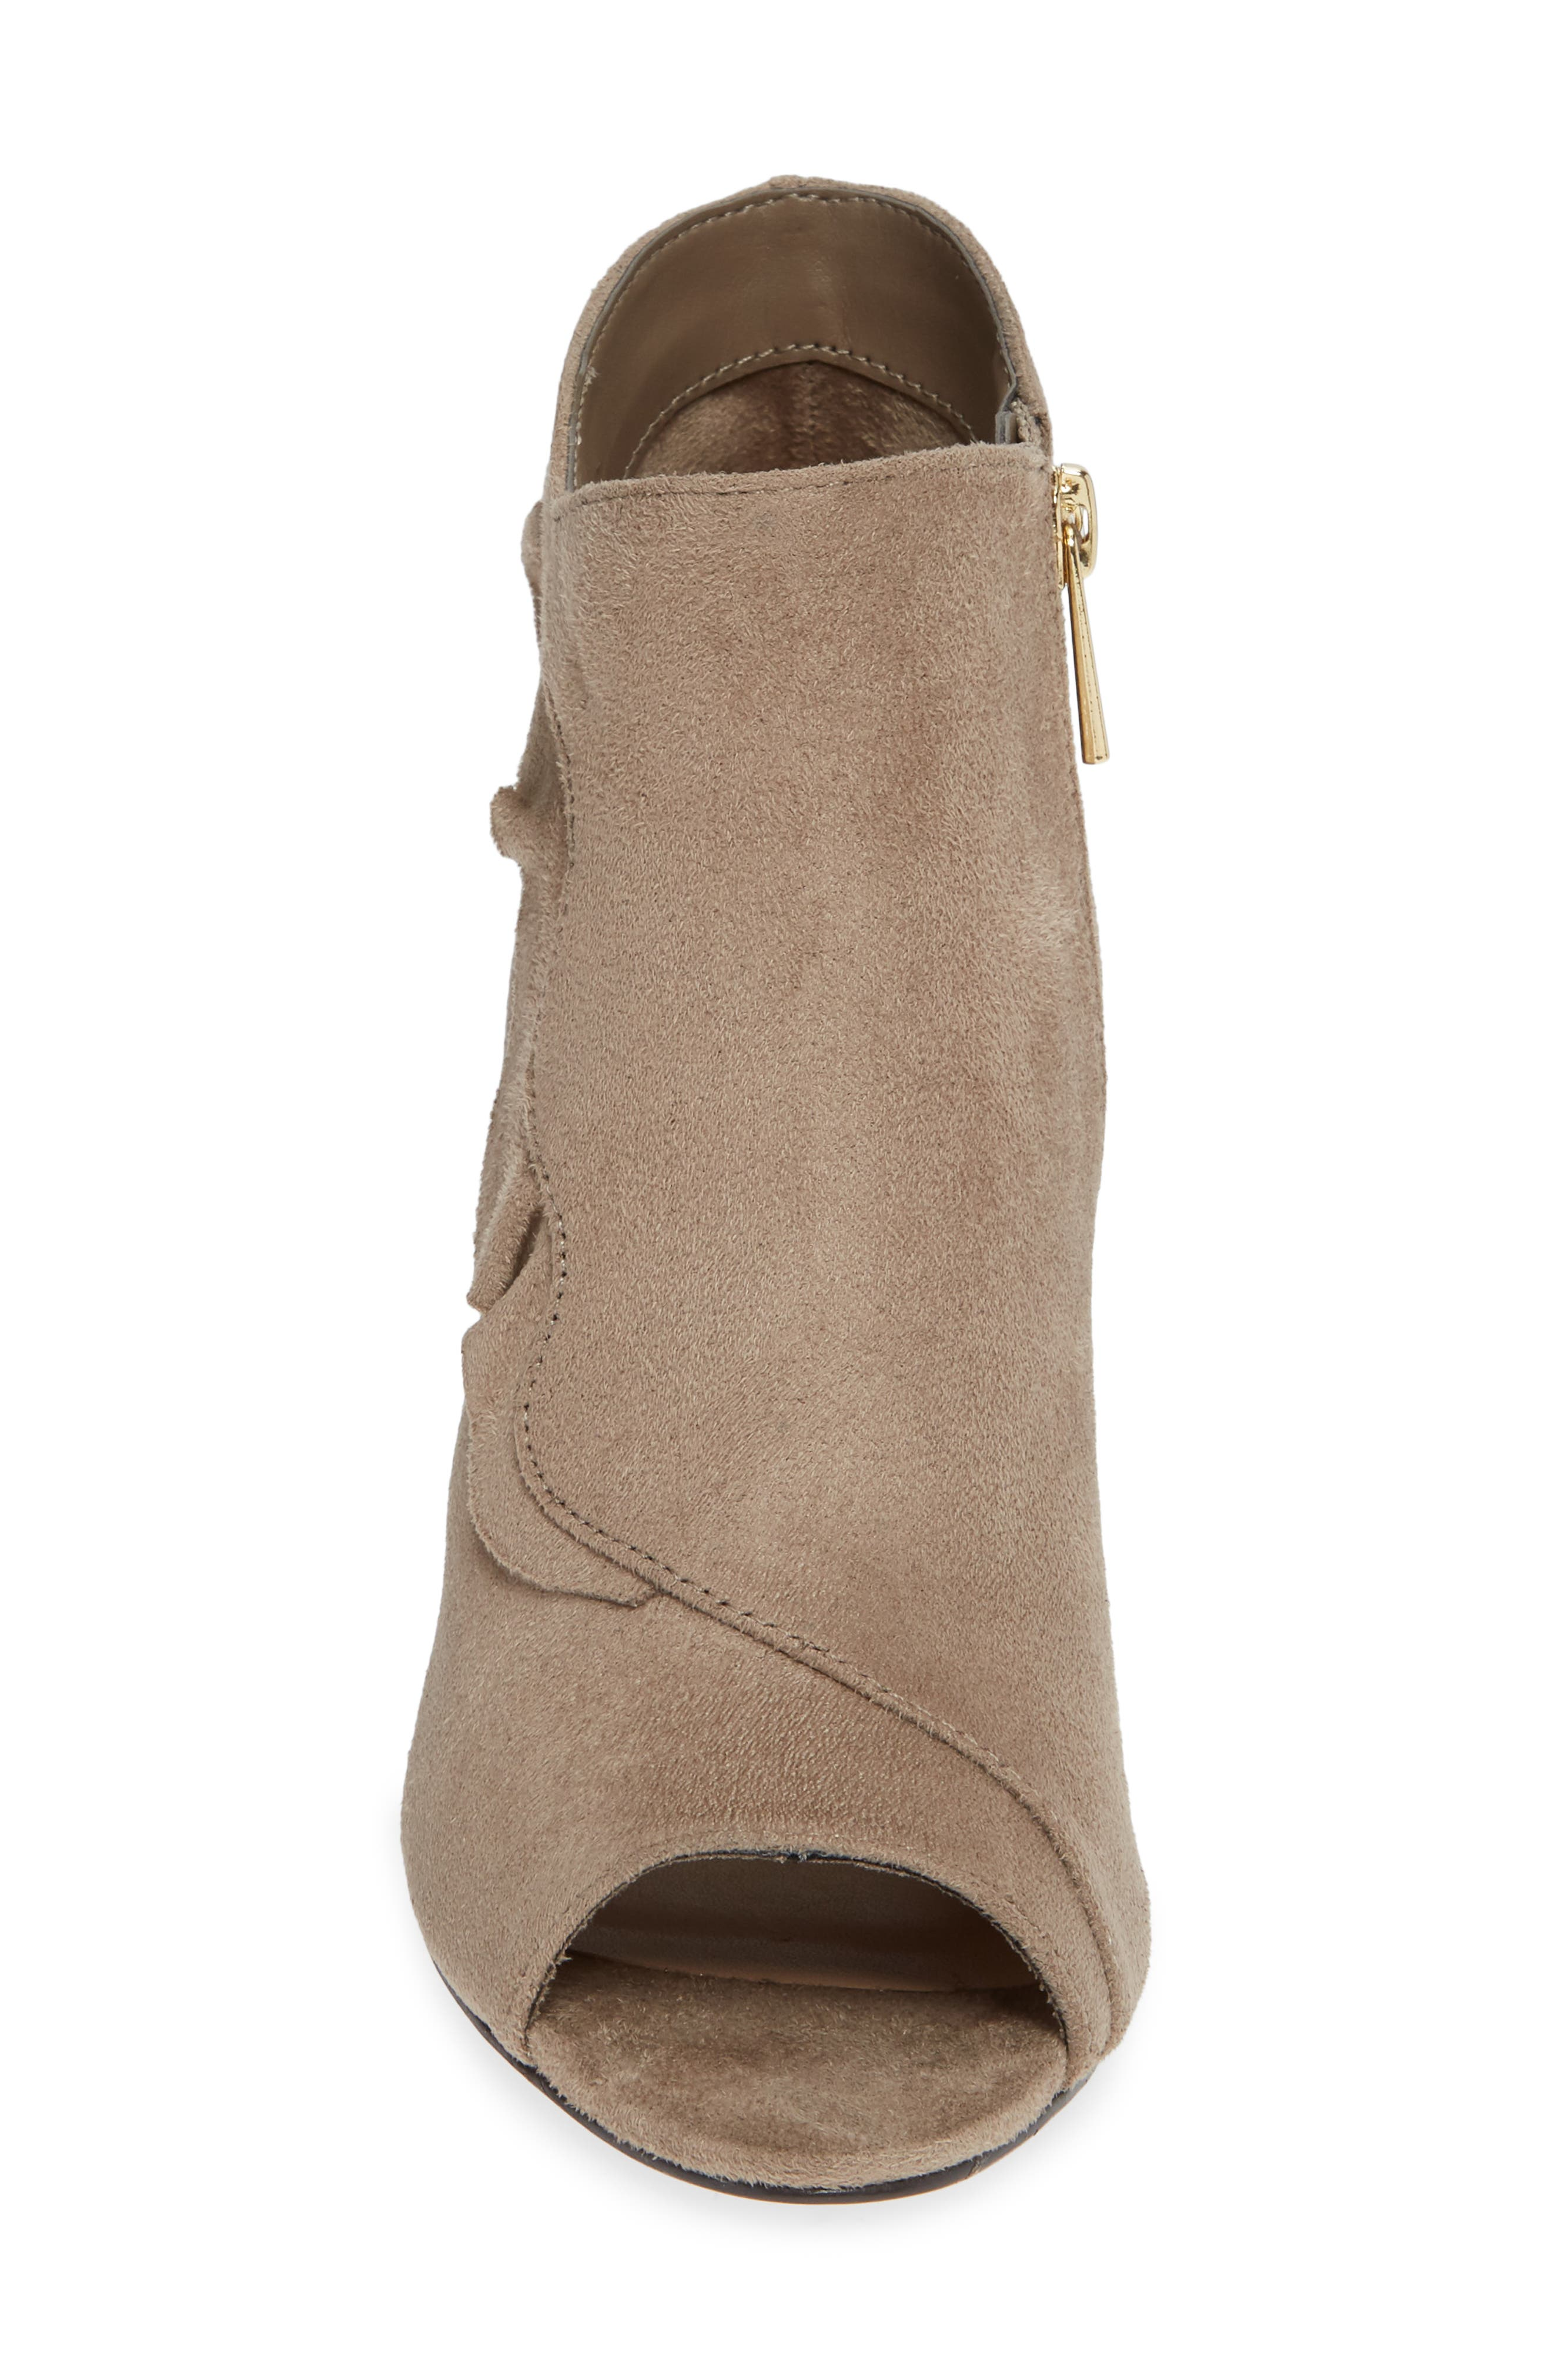 Nicolette Ruffle Dress Bootie,                             Alternate thumbnail 4, color,                             STONE SUEDE